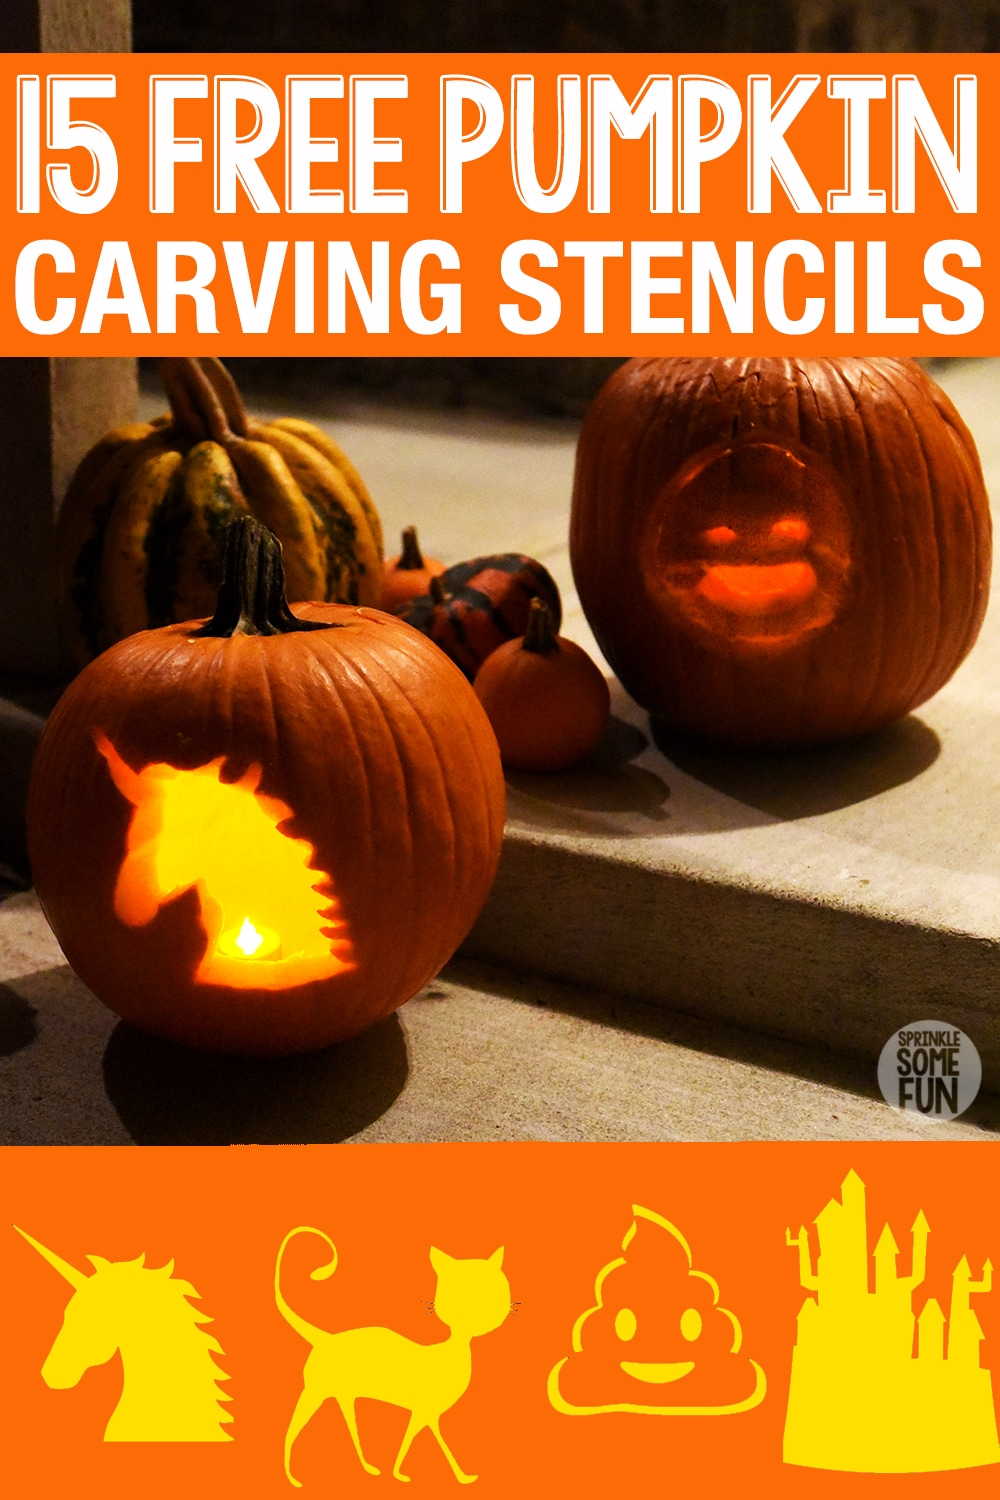 image relating to Pumpkin Stencils Free Printable named 15 No cost Pumpkin Carving Stencils Printables Pointers